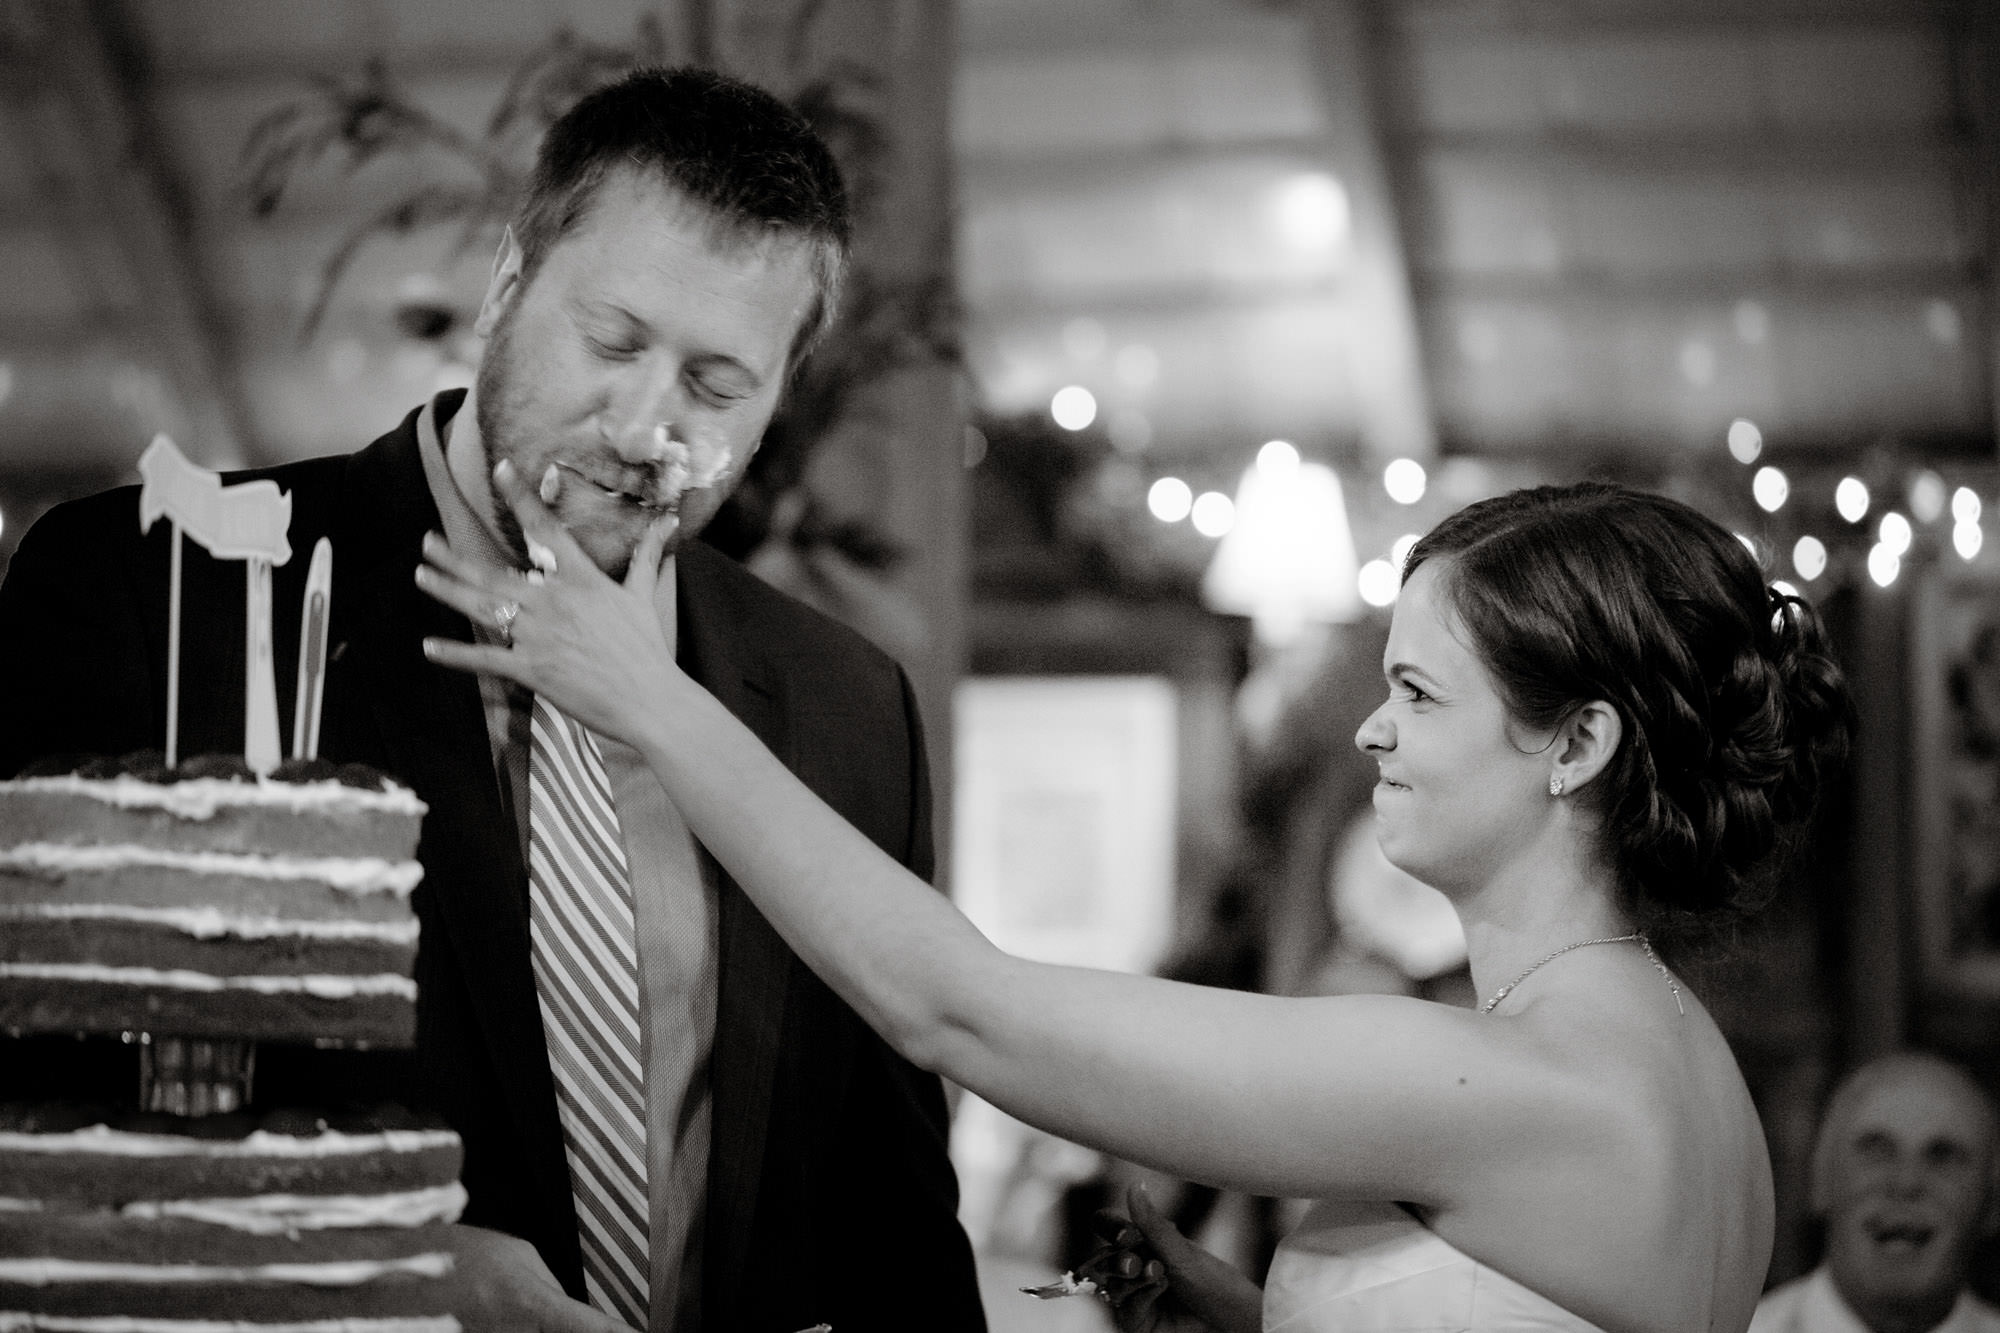 The bride and groom cut the cake during their Chanteclaire Farm Wedding.